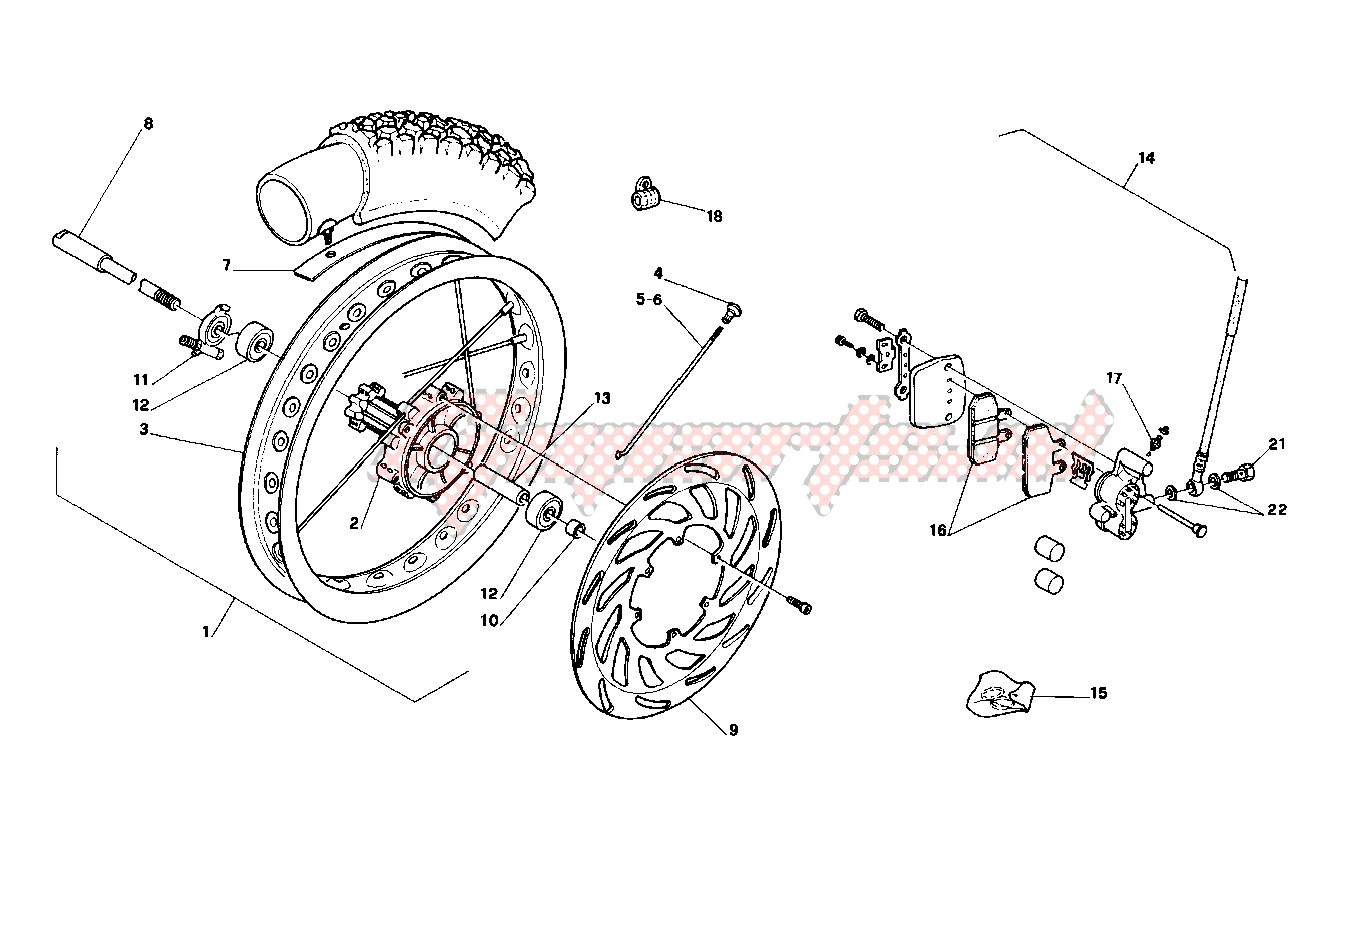 Suspensions - Wheels-Front wheel